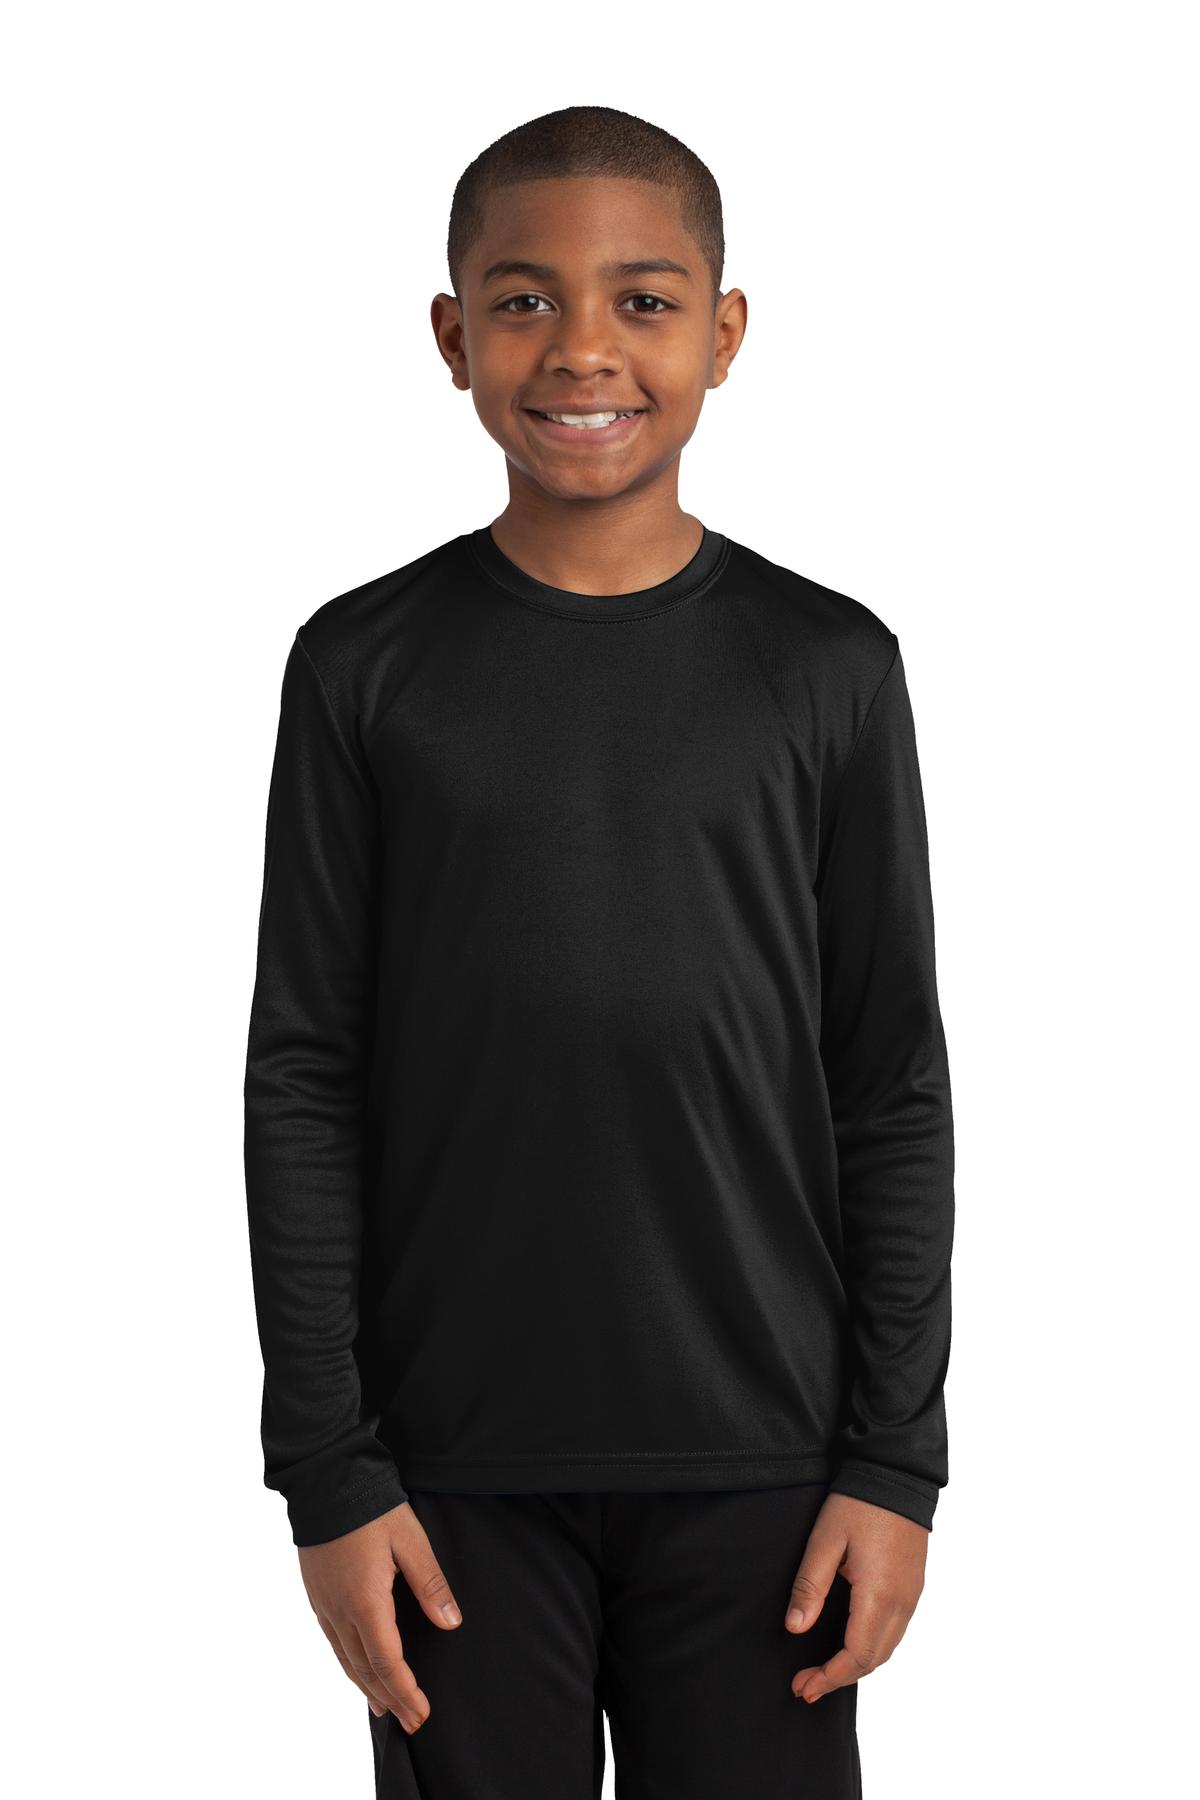 Sport-Tek ®  Youth Long Sleeve PosiCharge ®  Competitor™ Tee. YST350LS - Black